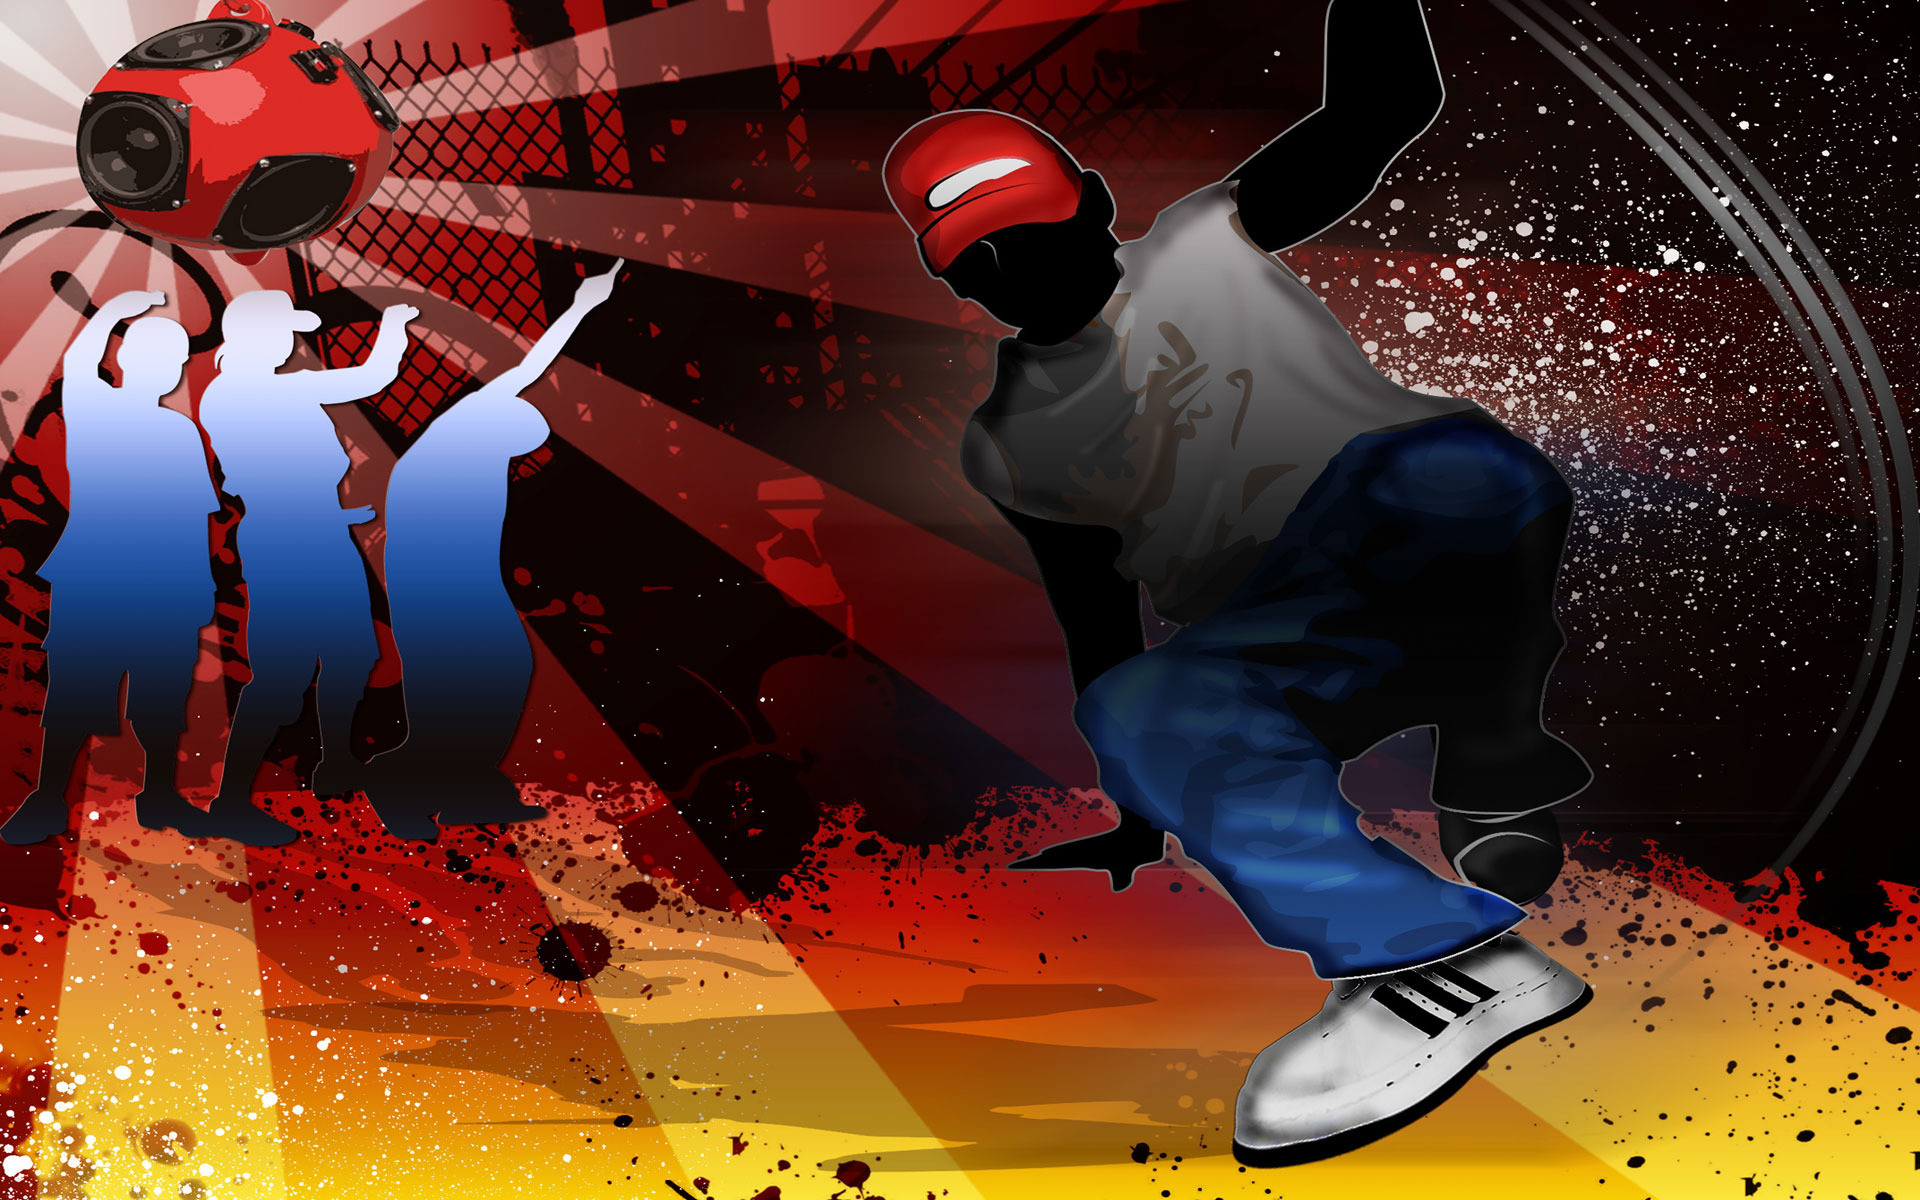 Hip hop dancer wallpaper 1813 1920x1200